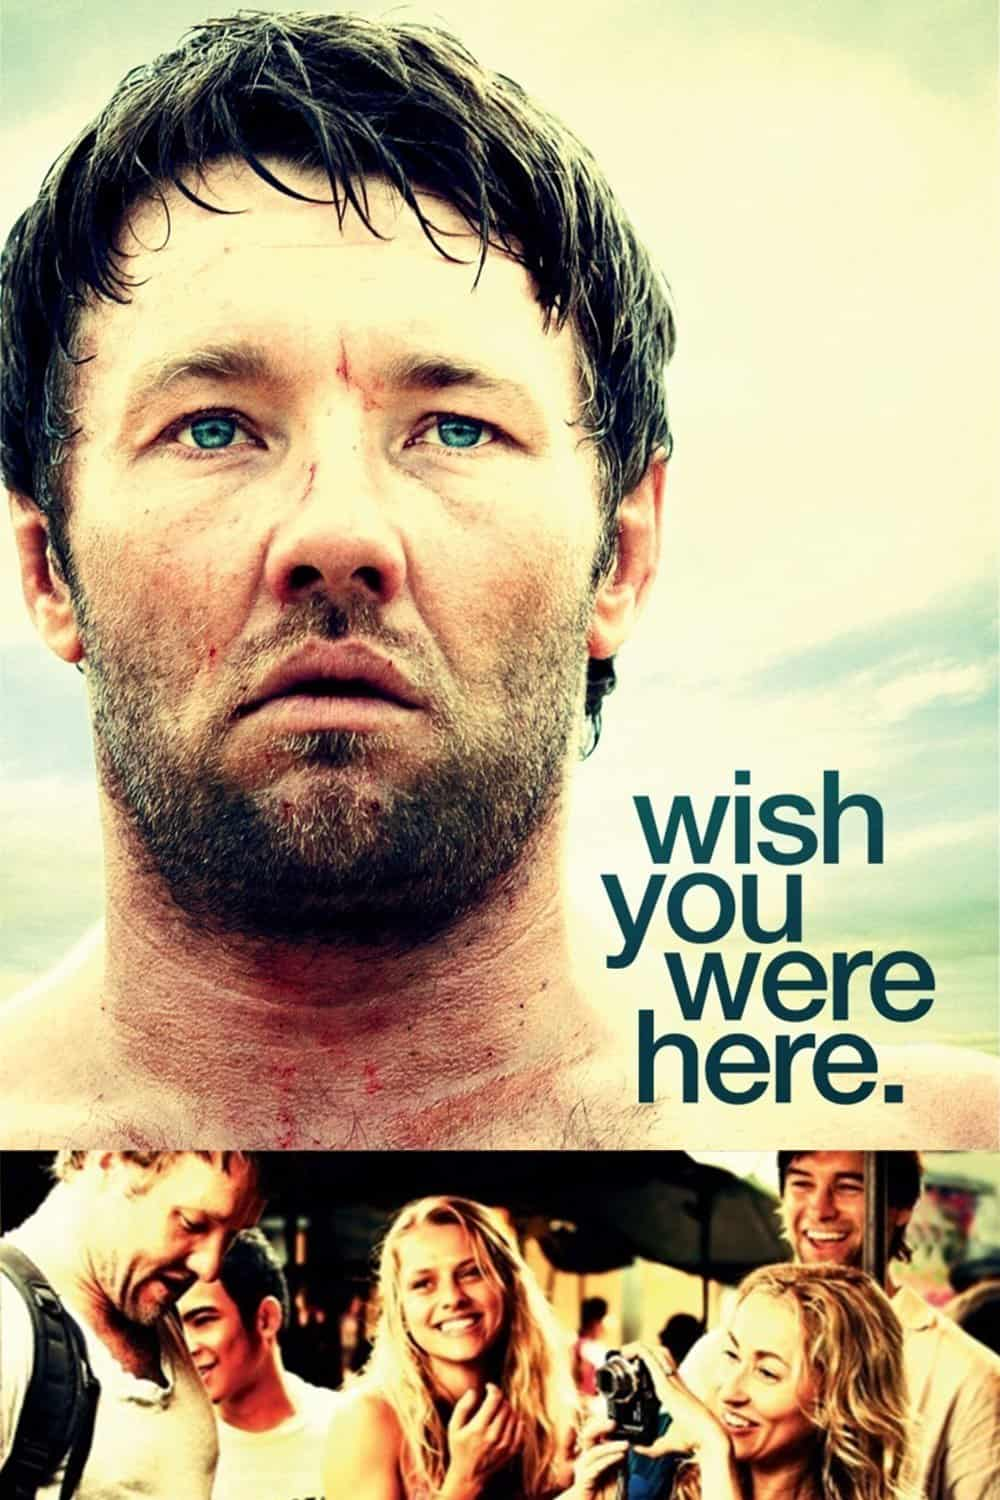 Wish You Were Here, 2012